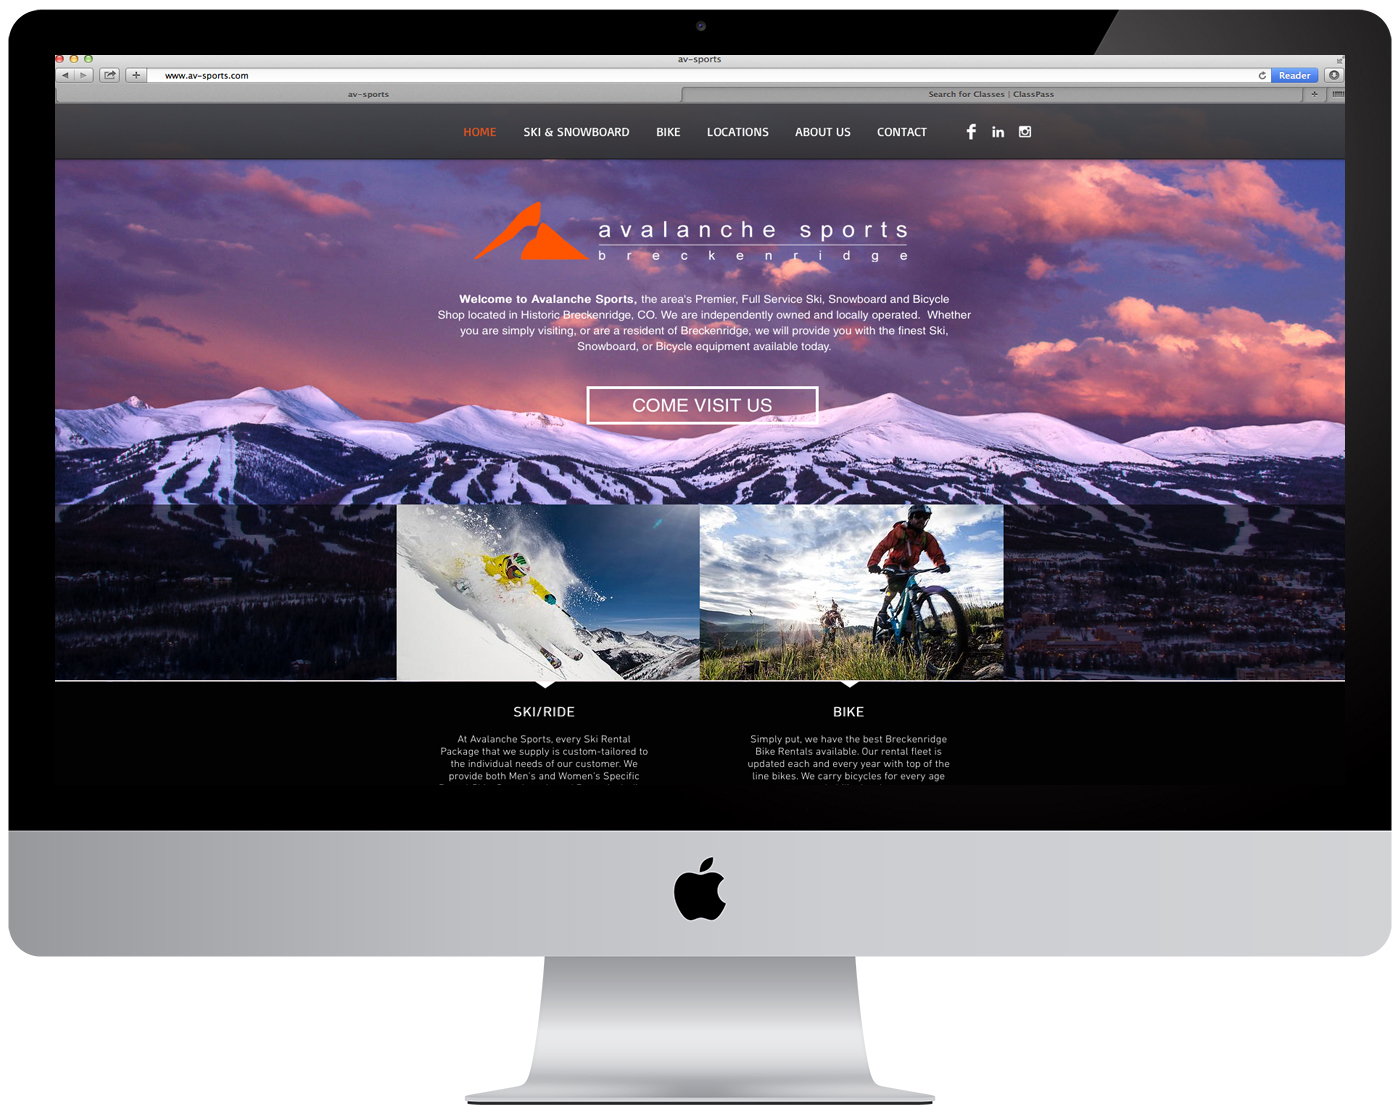 Avalanche Sports Website Design